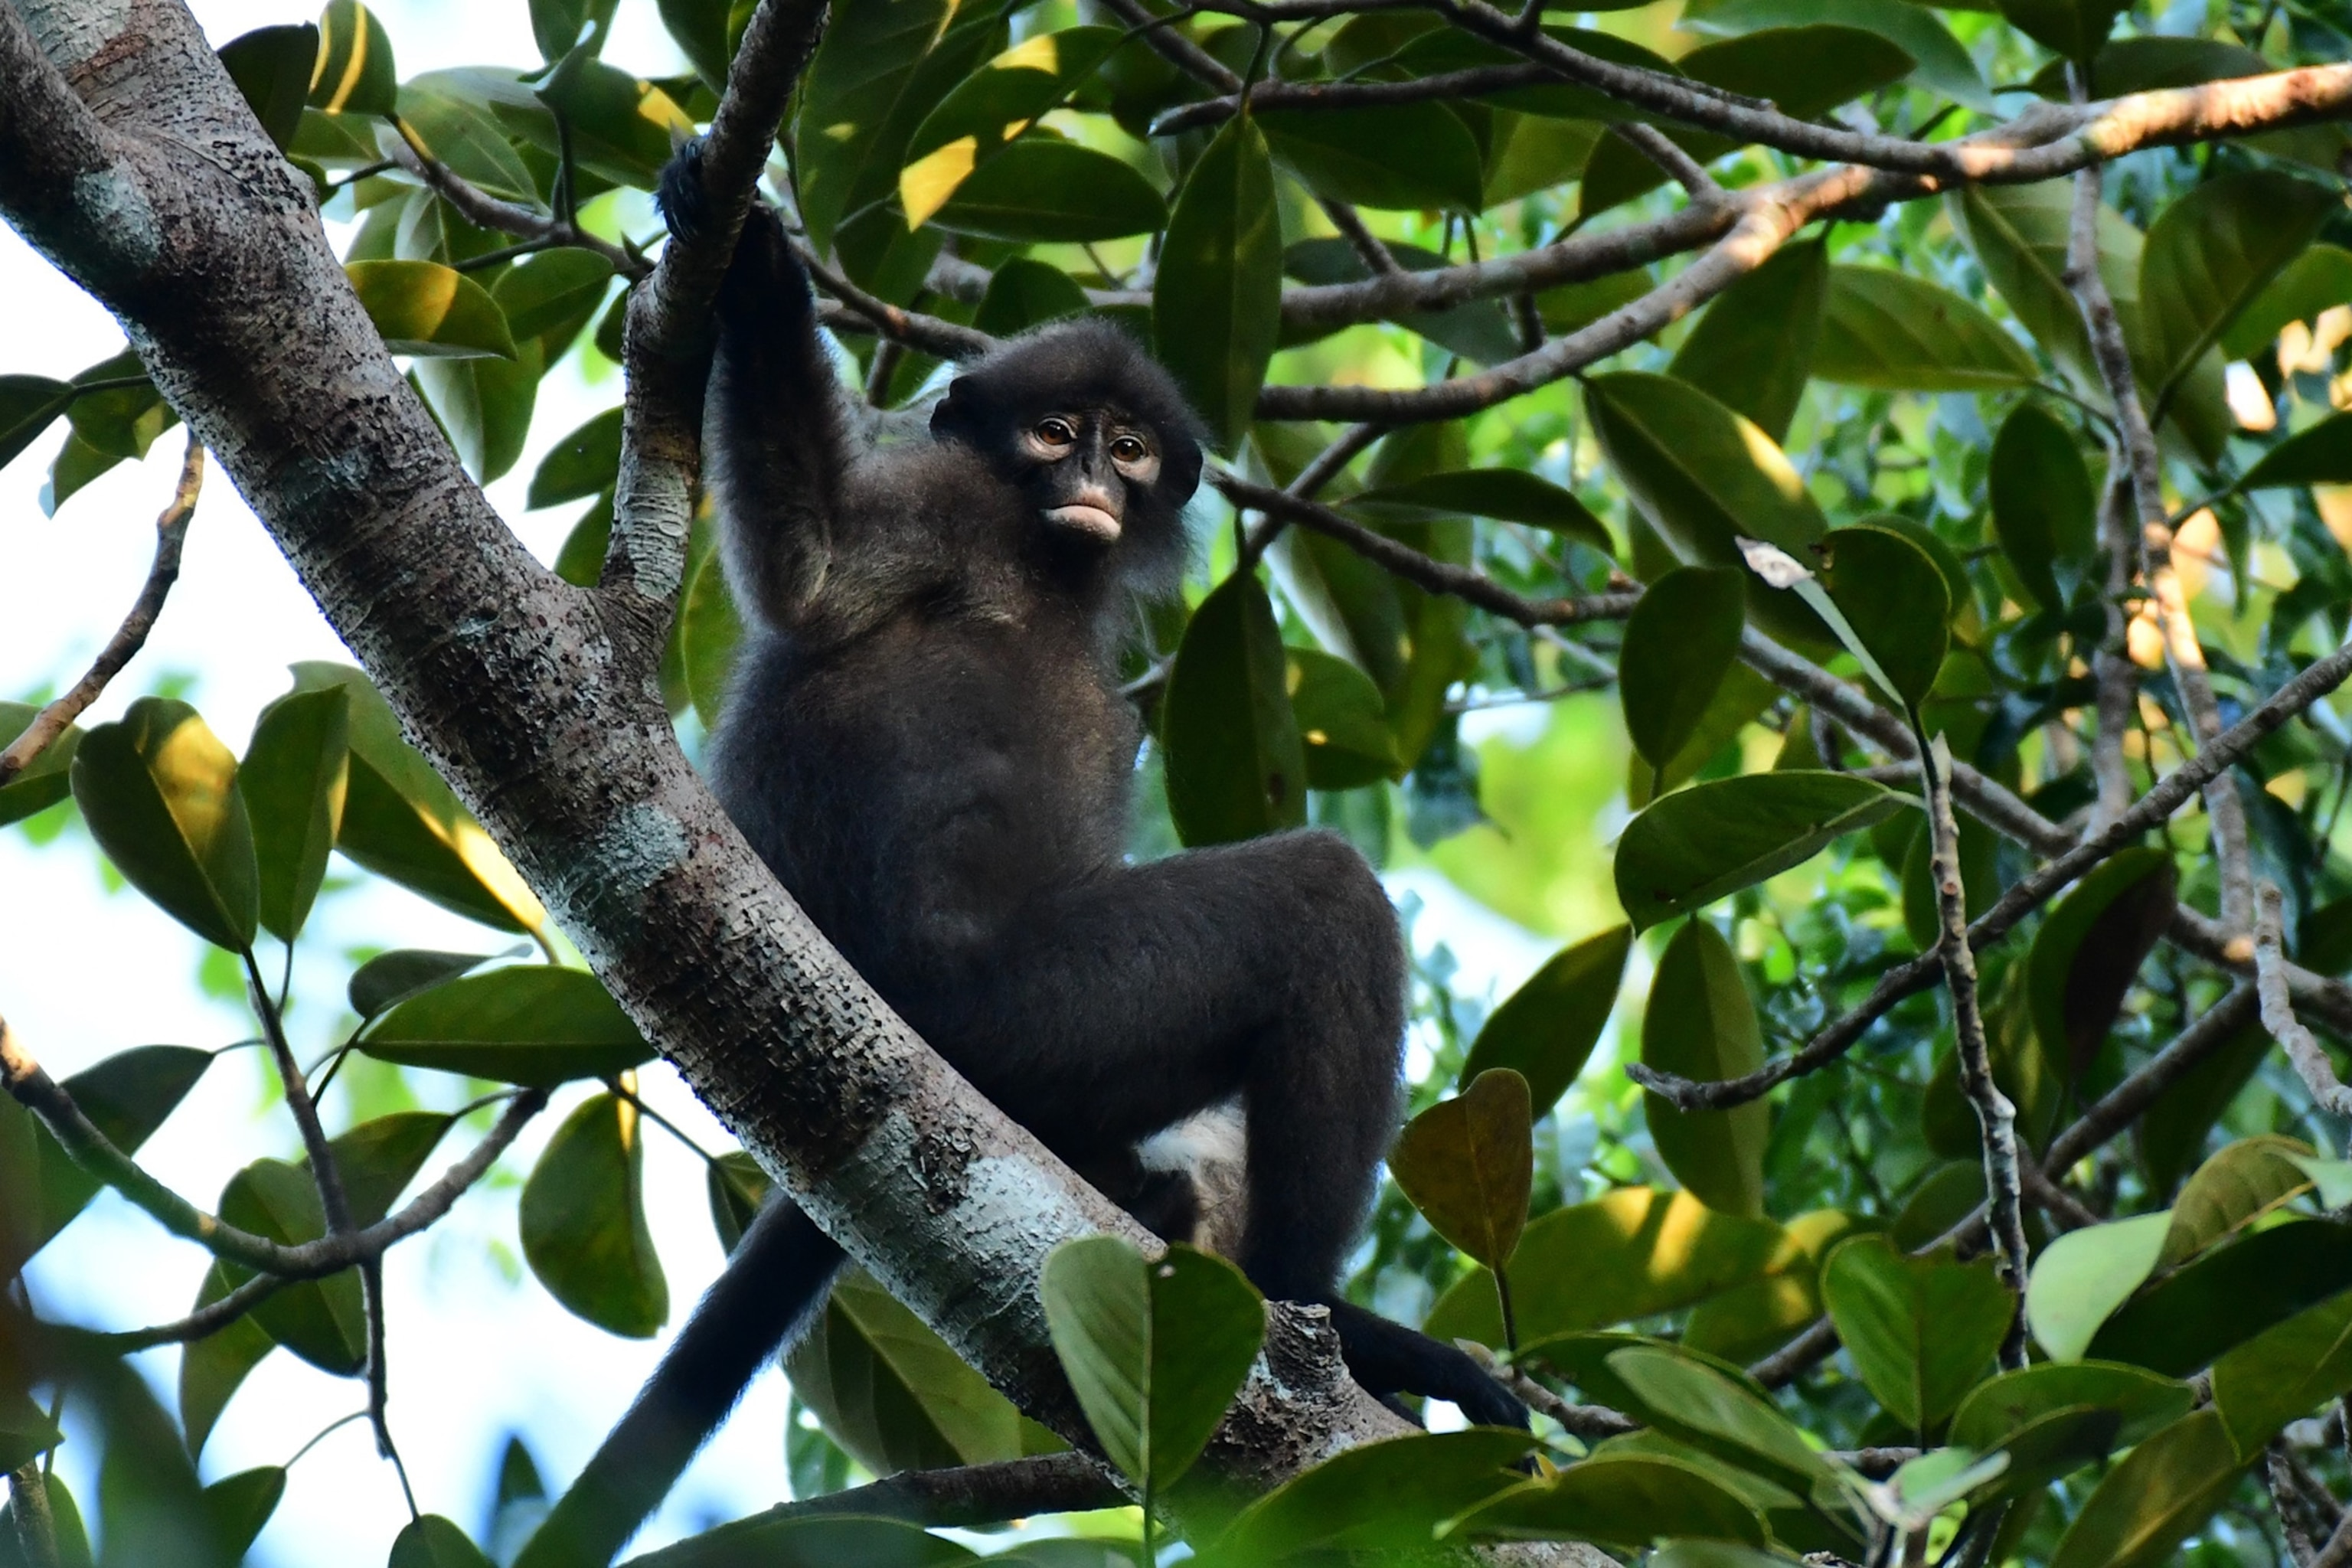 Among the most important genres are: New Monkey Species Found Hiding In Plain Sight